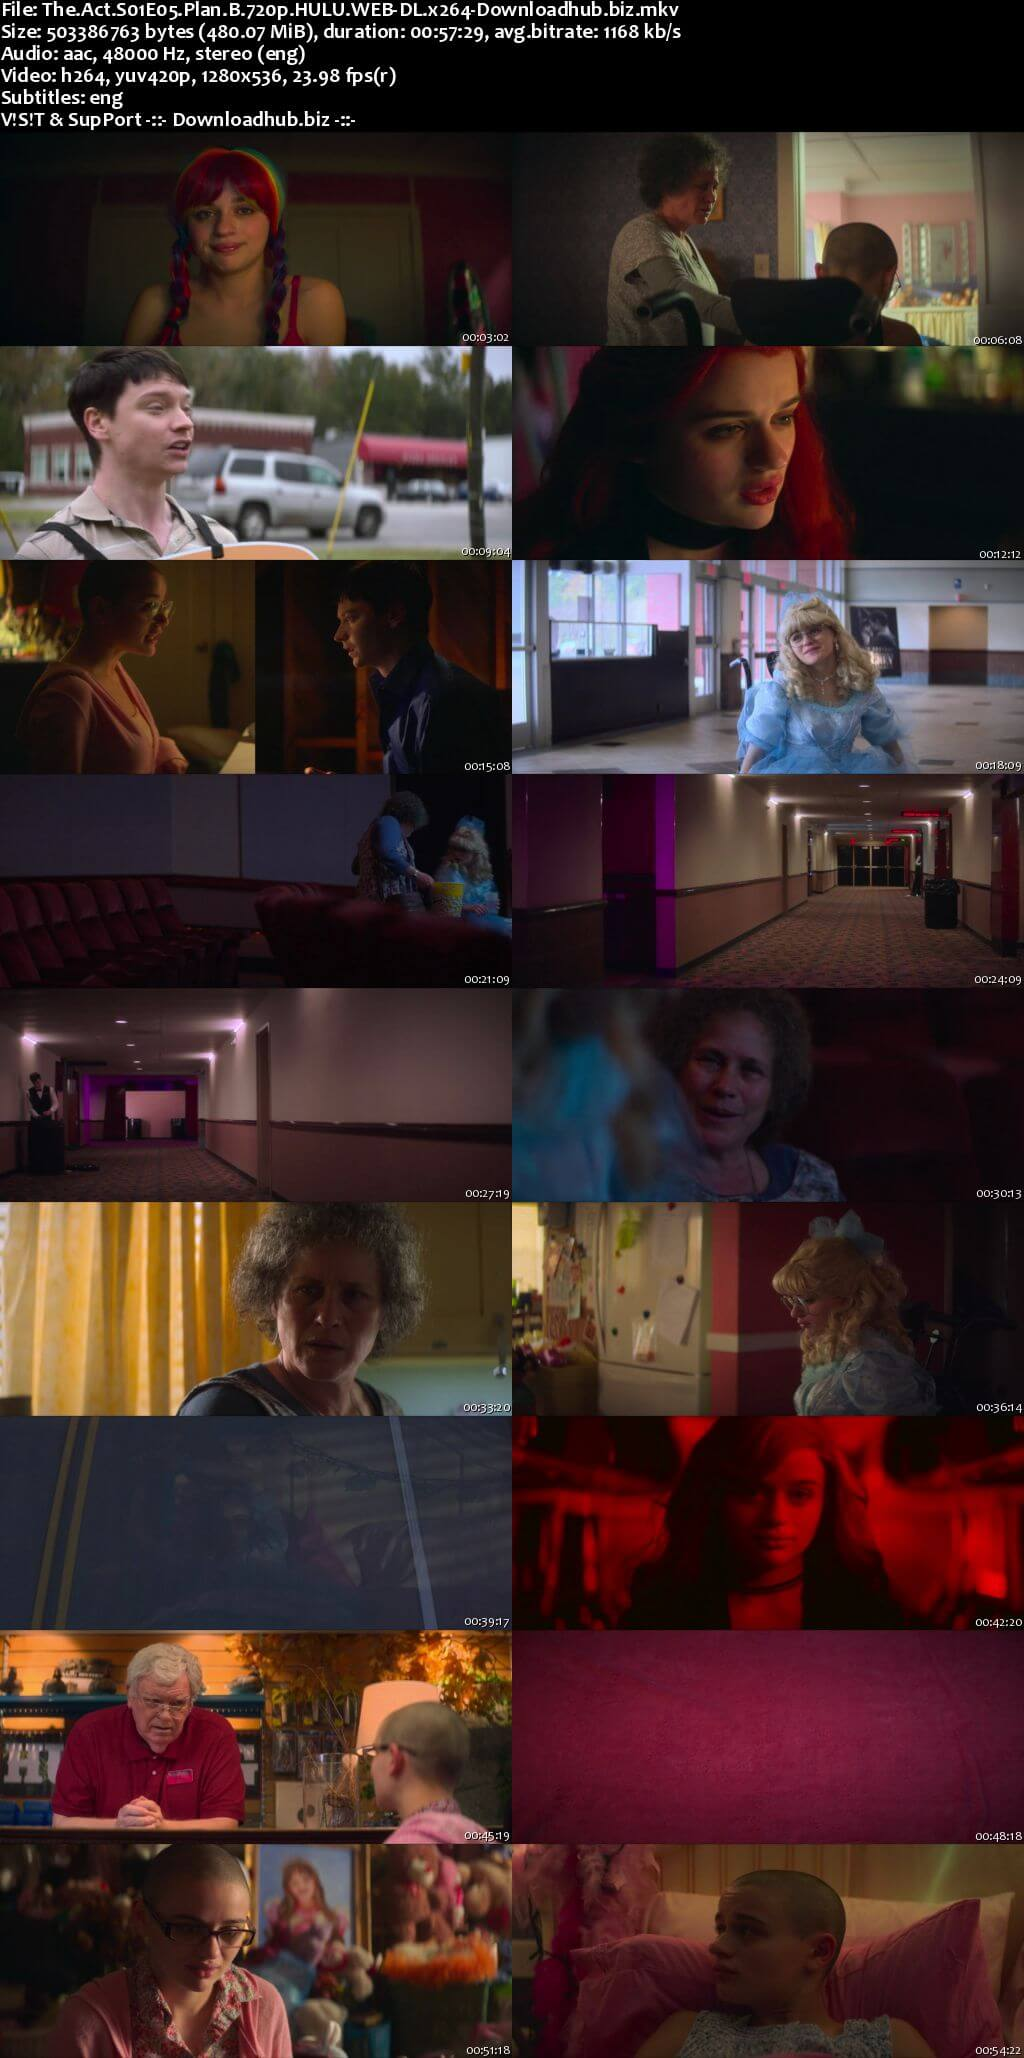 The Act S01E05 450MB WEB-DL 720p ESubs